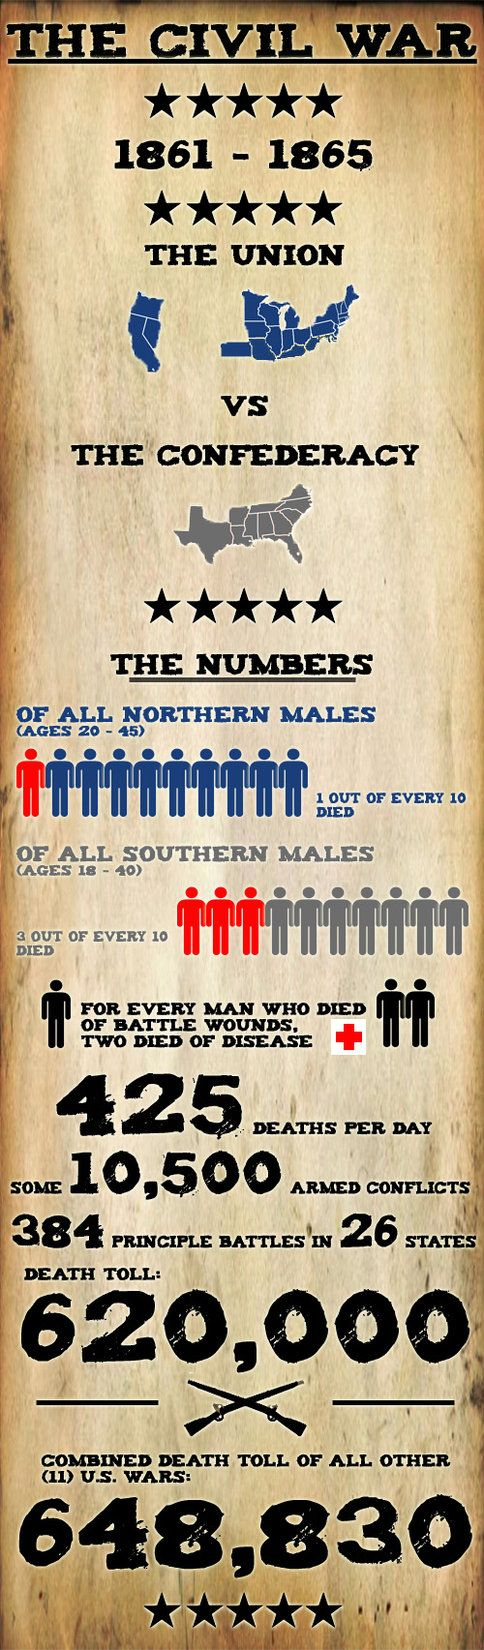 Civil War Infographic from http://th3thr1ll3r.deviantart.com/